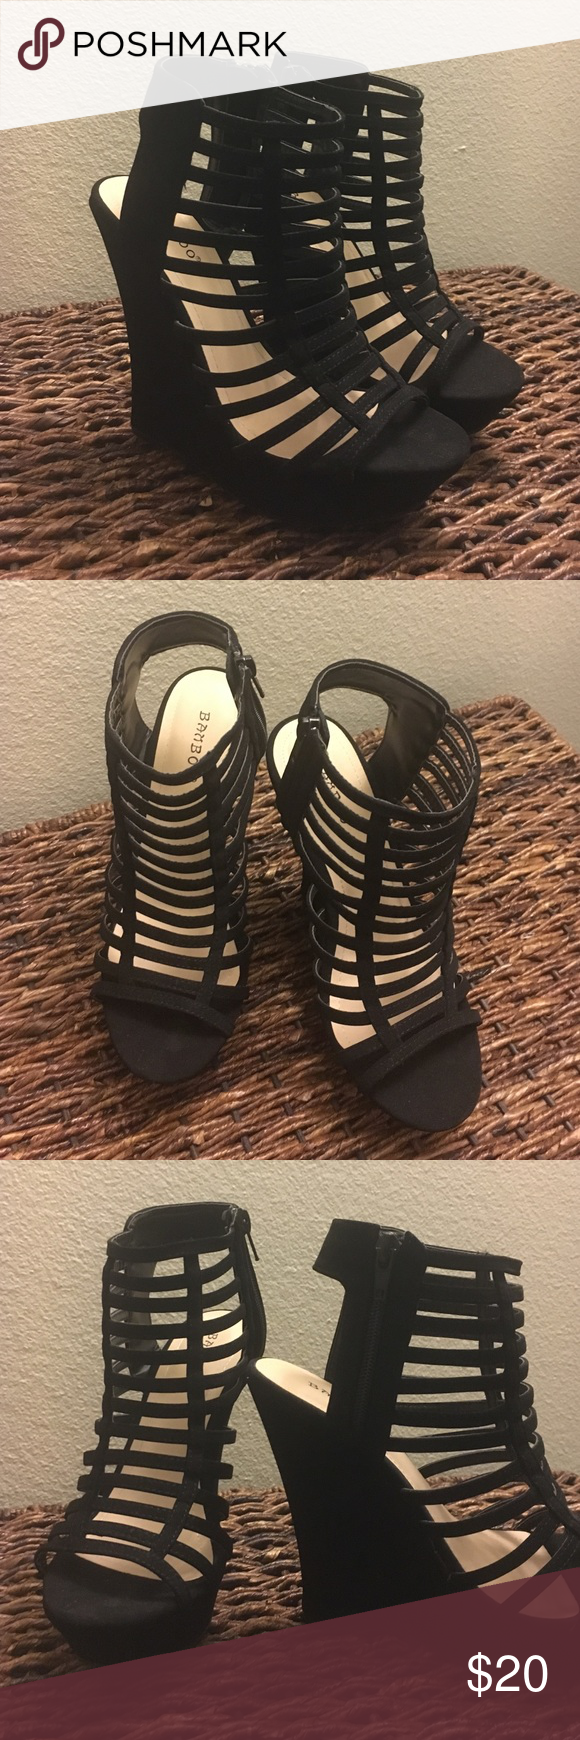 Caged Wedges Brand new, never been worn but no tags. Black suede wedges. About a 5 1/2 inch heel. Size 7. Shoes Wedges